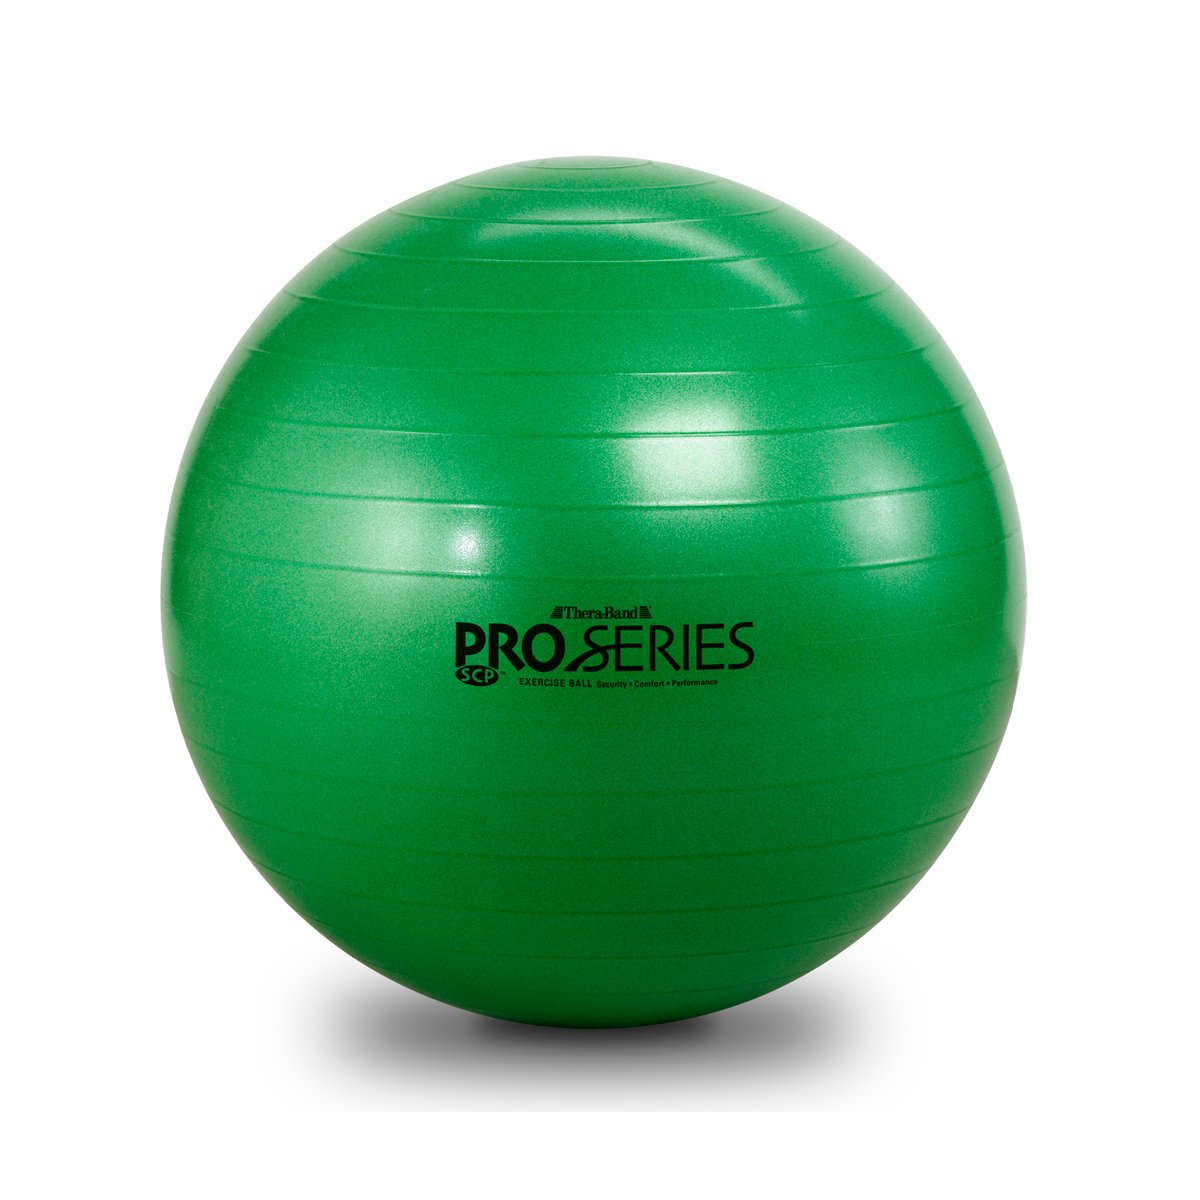 TheraBand Exercise Ball, Professional Series Stability Ball with 65 cm Diameter for Athletes 5'7'' to 6'1'' Tall, Slow Deflate Fitness Ball for Improved Posture, Balance, Yoga, Pilates, Core, Green